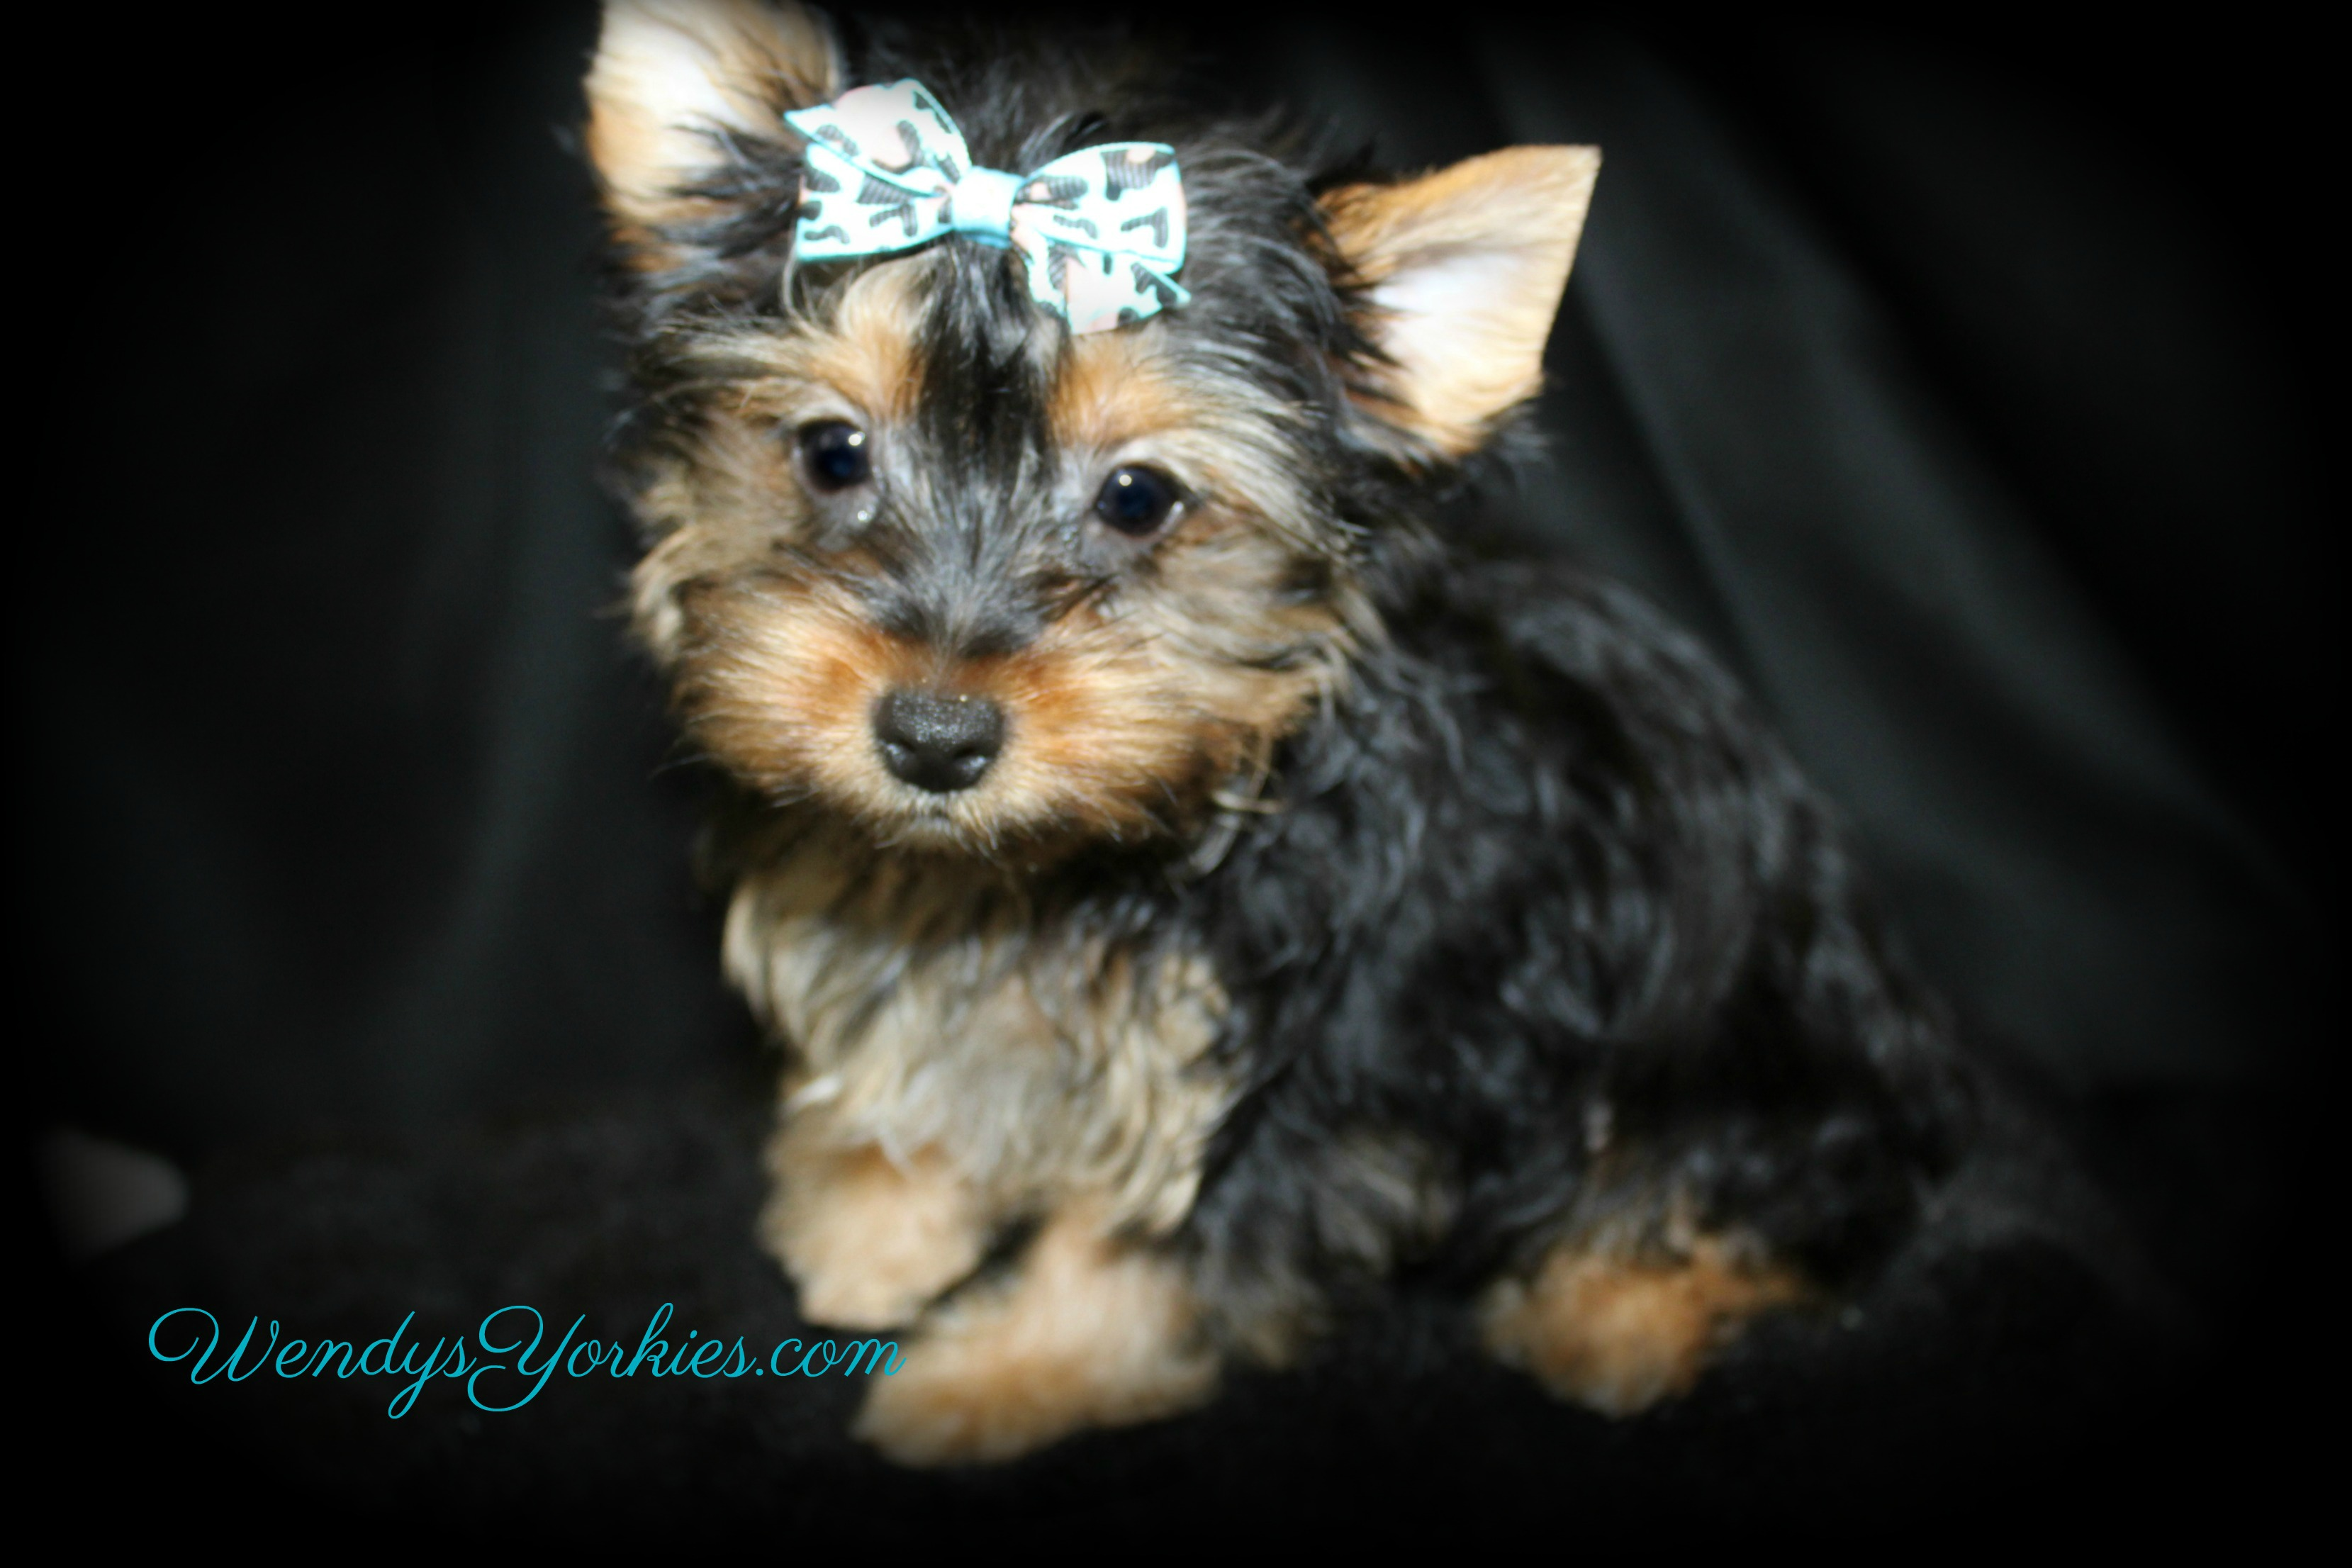 Toy Yorkie puppy for sale, Male yorkie puppy in Texas, Anna m1, WendysYorkies.com